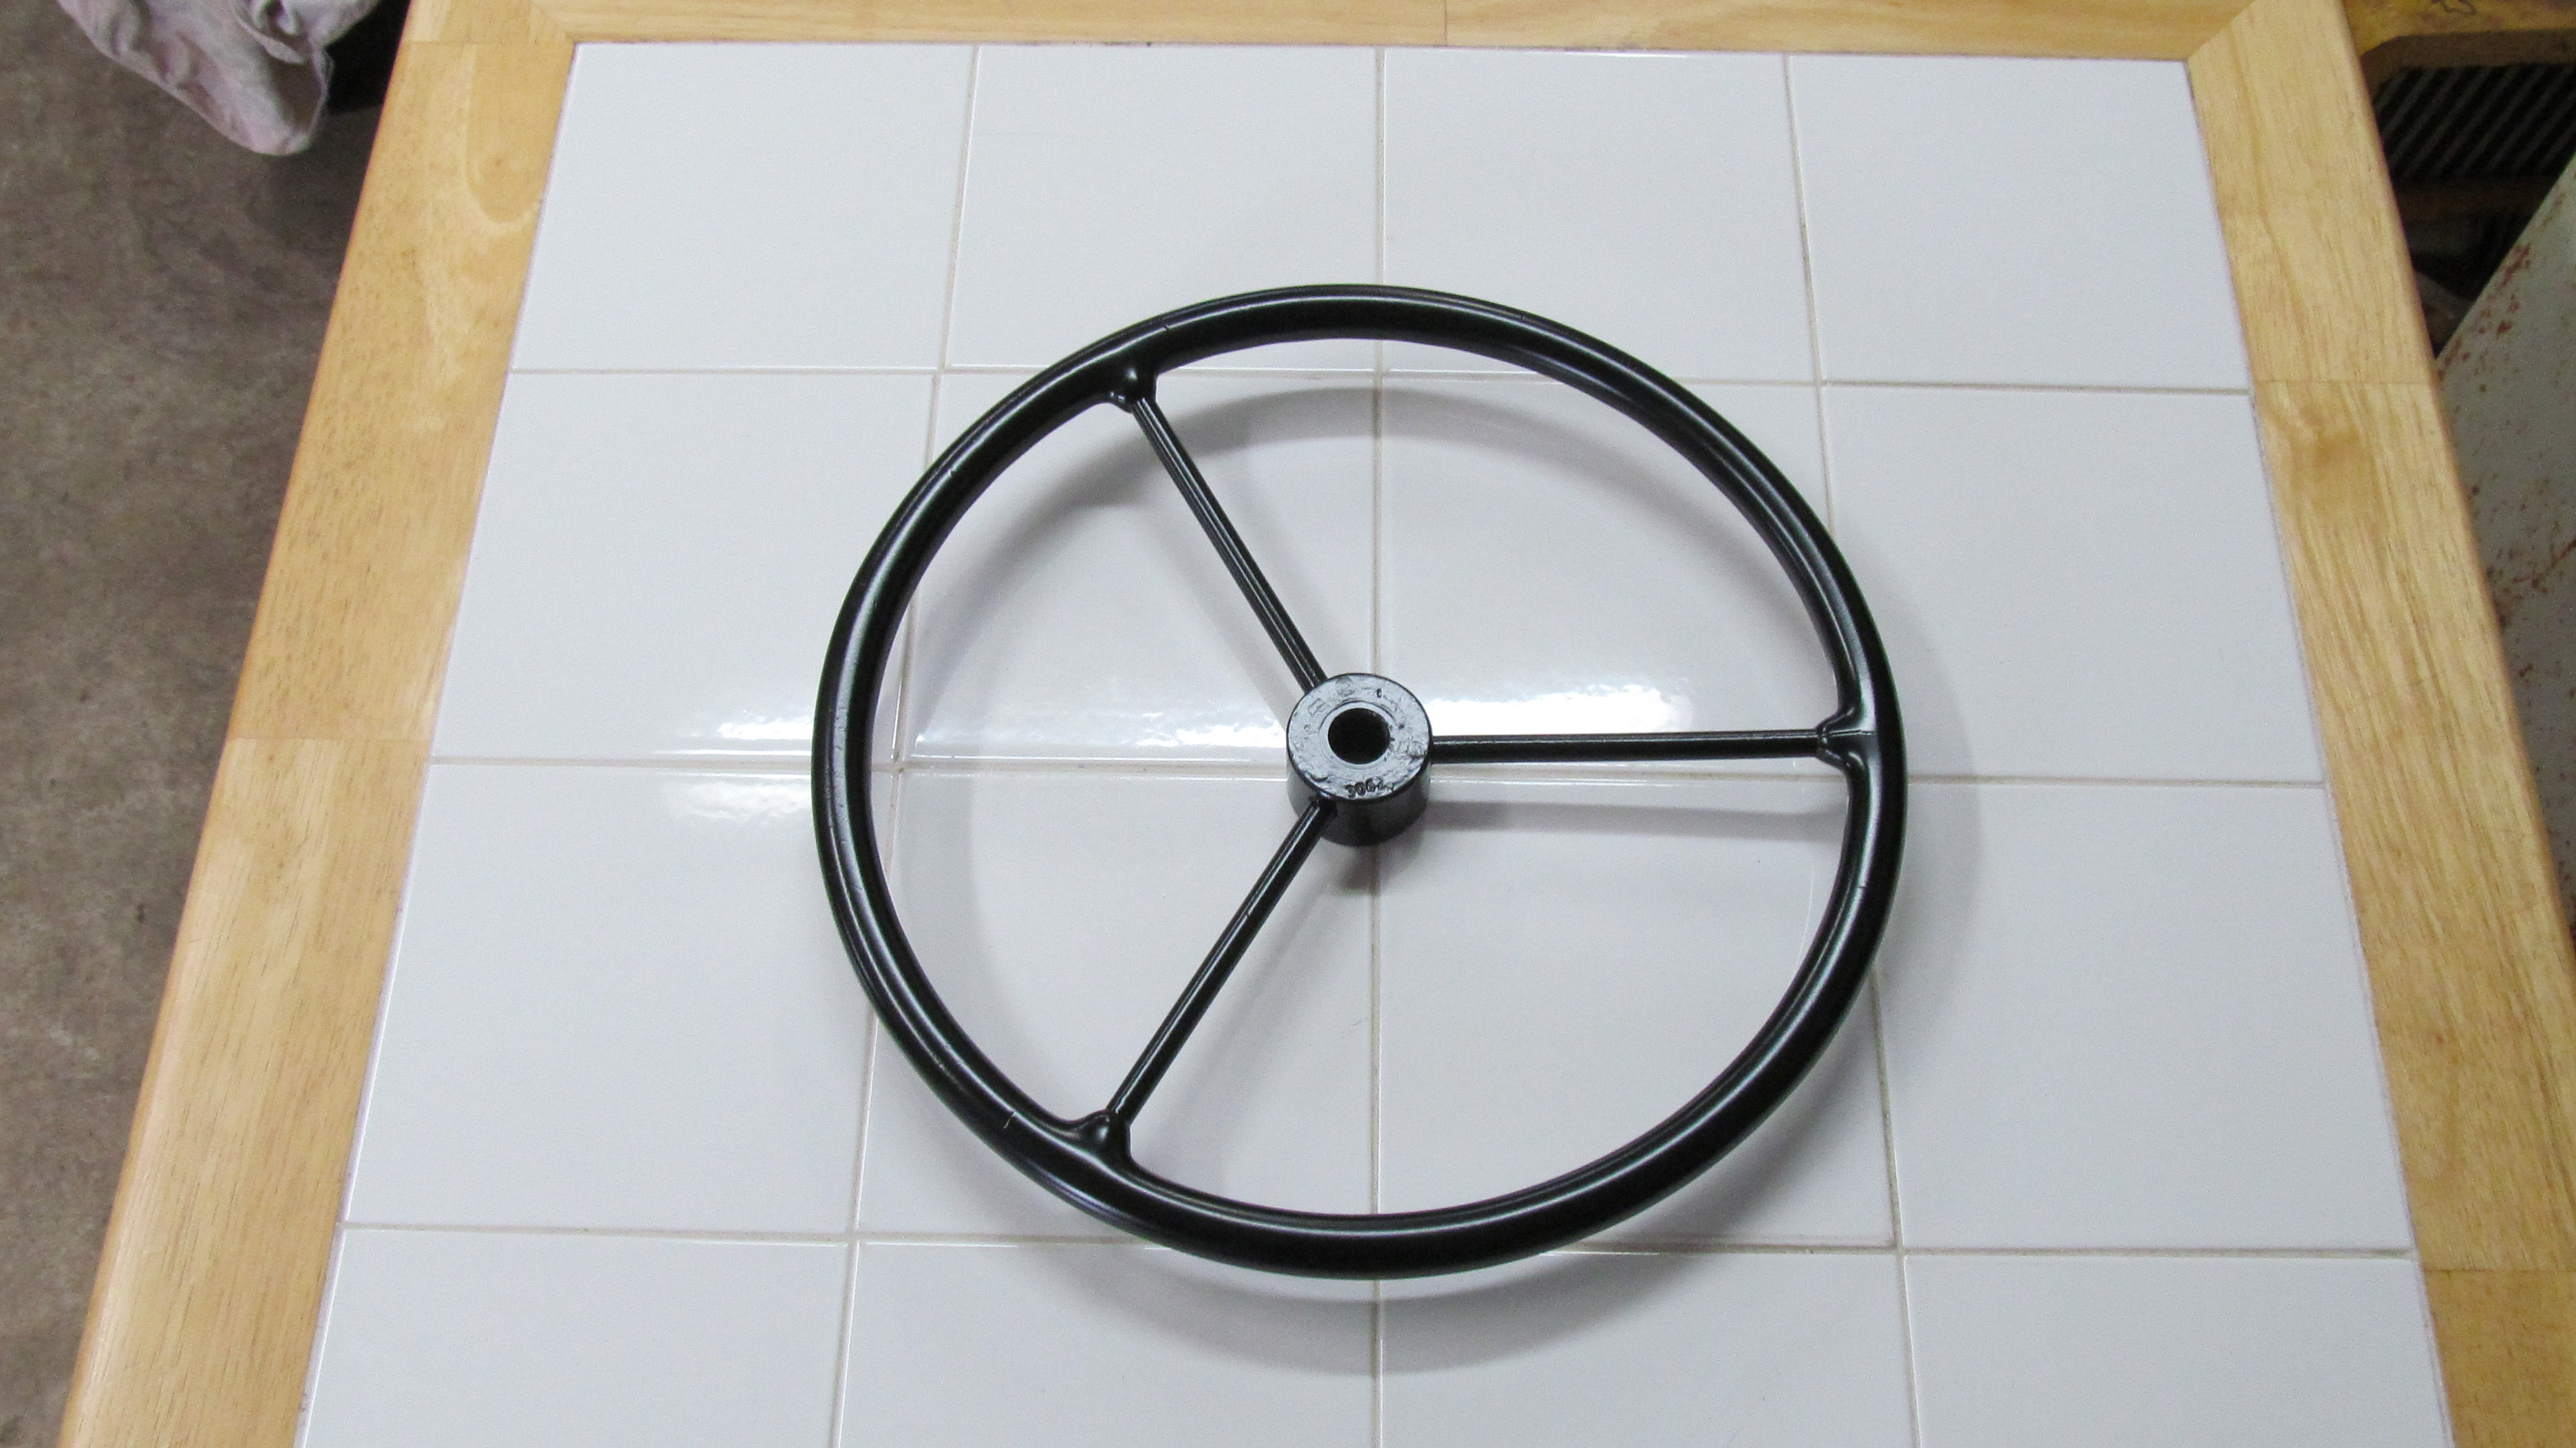 Steering Wheel for early Cub Cadet